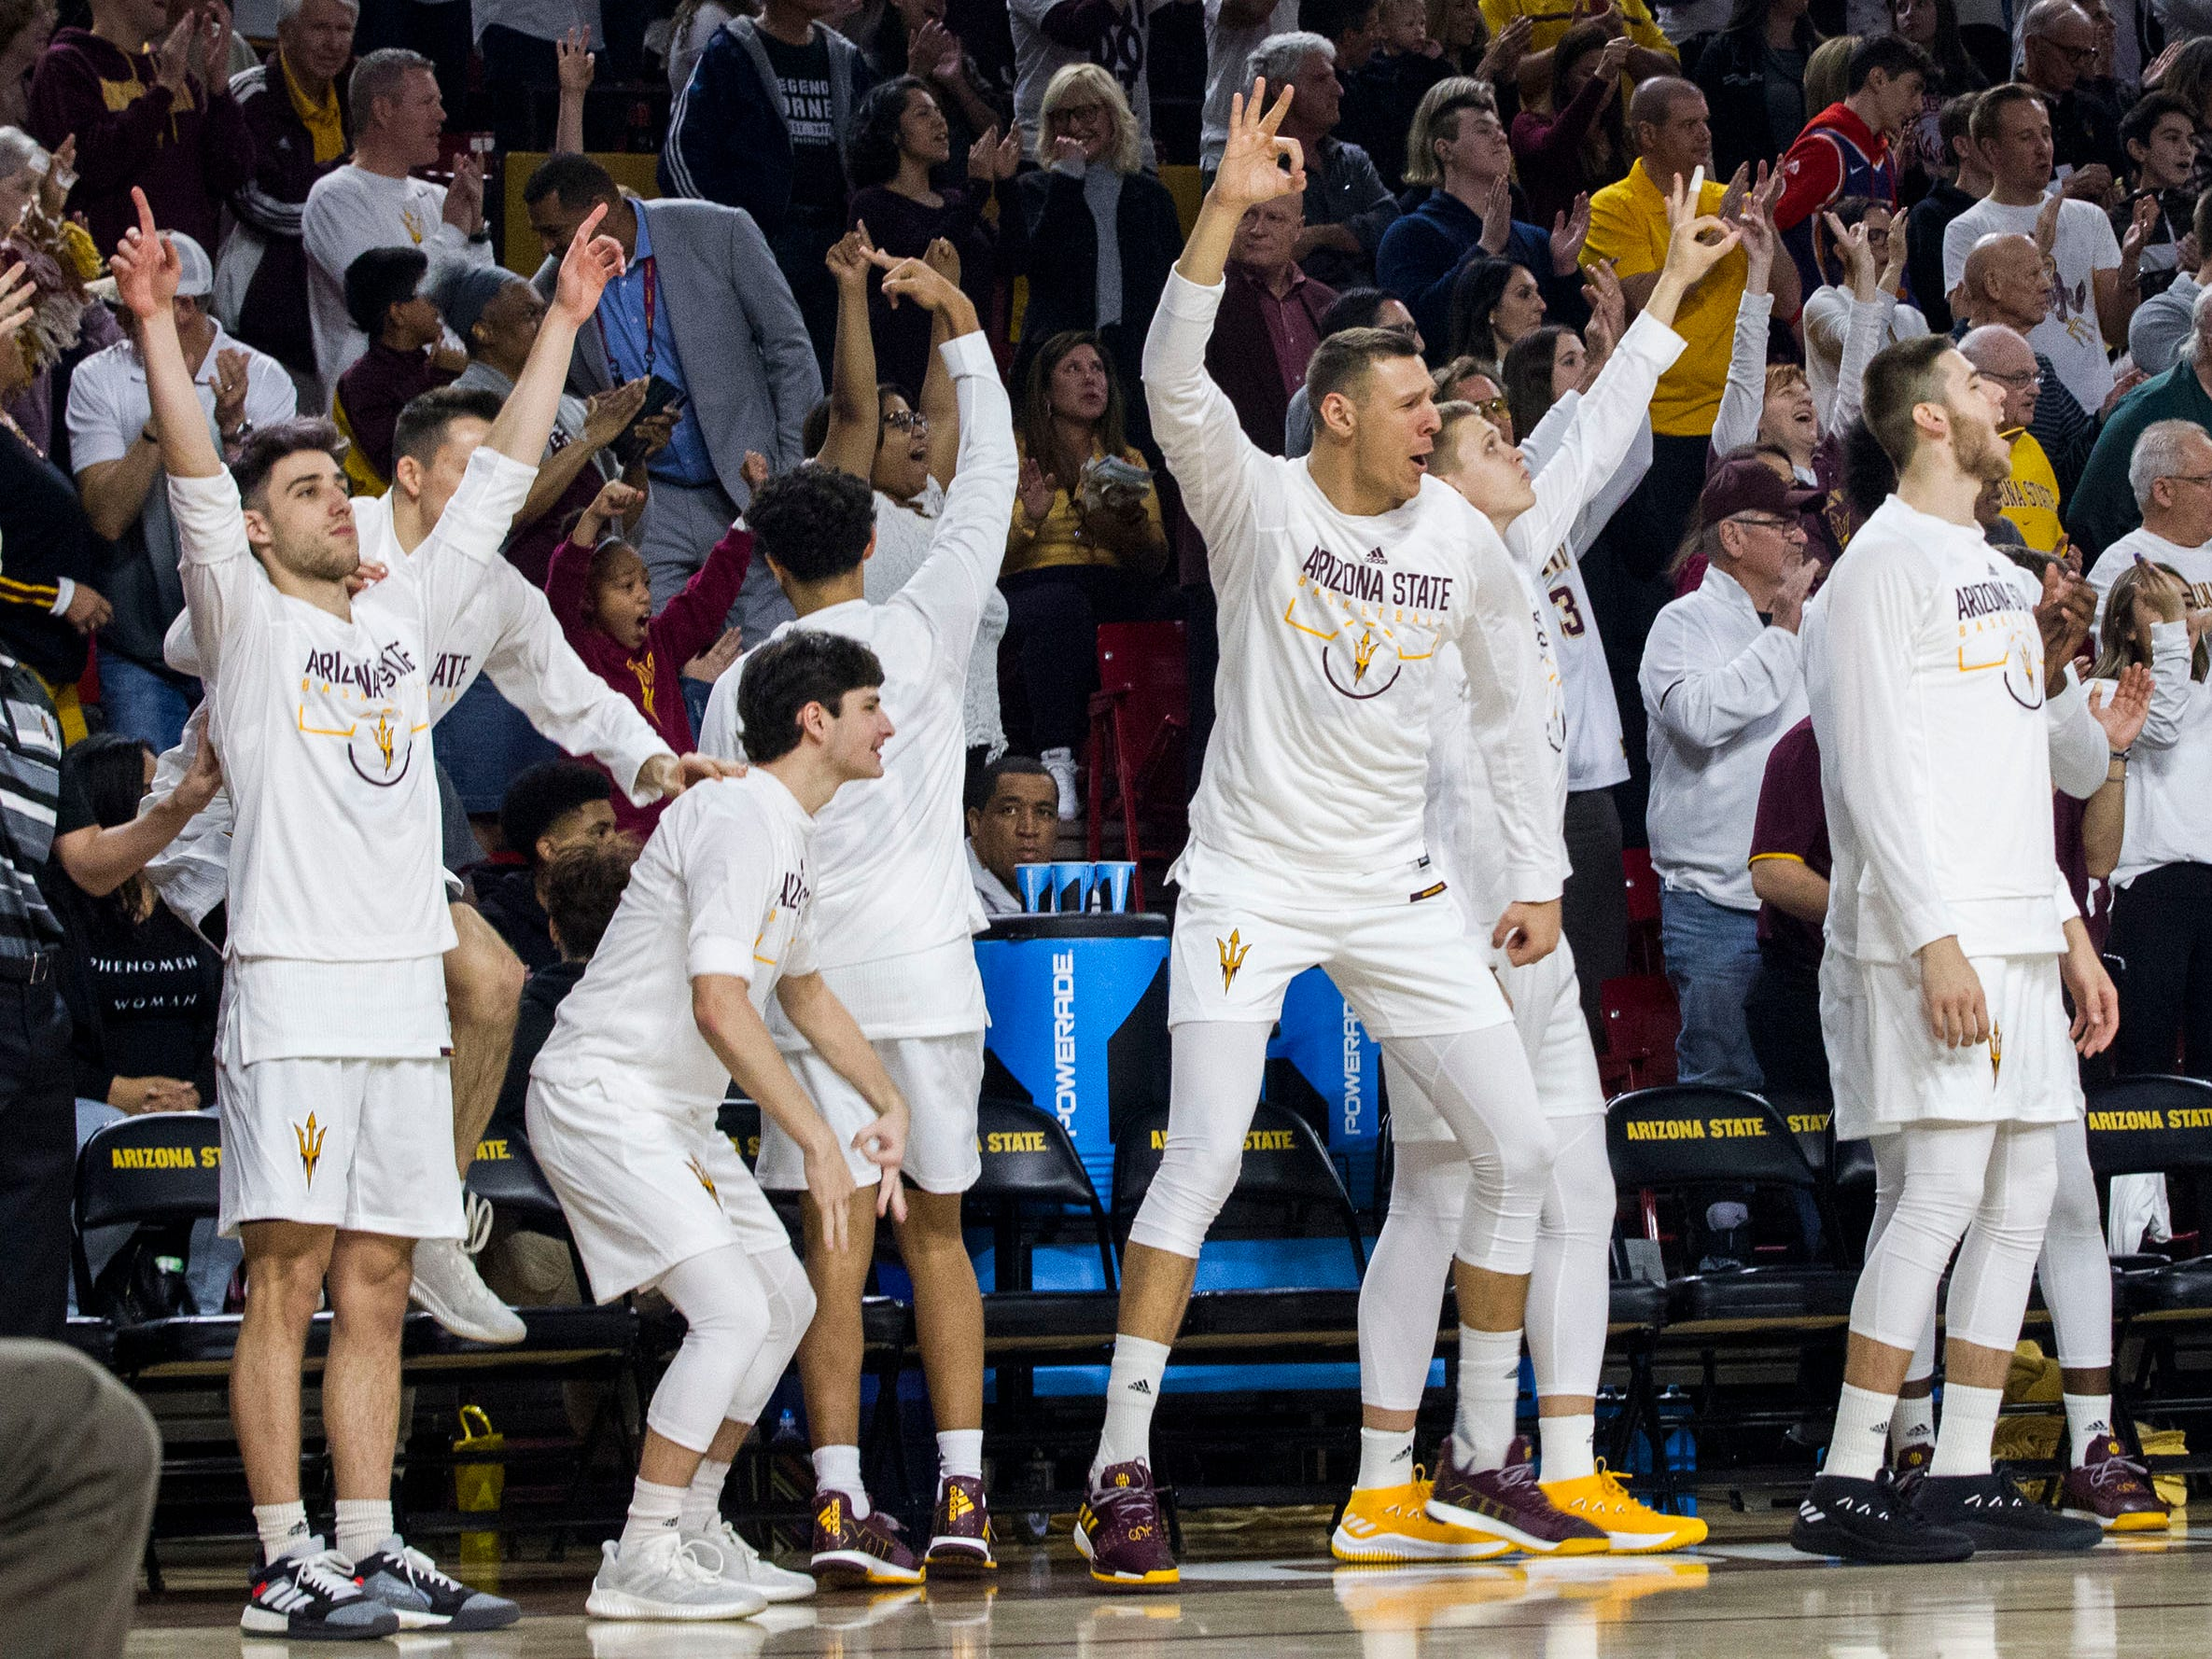 Arizona State players on the bench celebrate after a 3-point shot against Oregon during the first half, Saturday, Jan. 19, 2019, in Tempe, Ariz. (AP Photo/Darryl Webb)